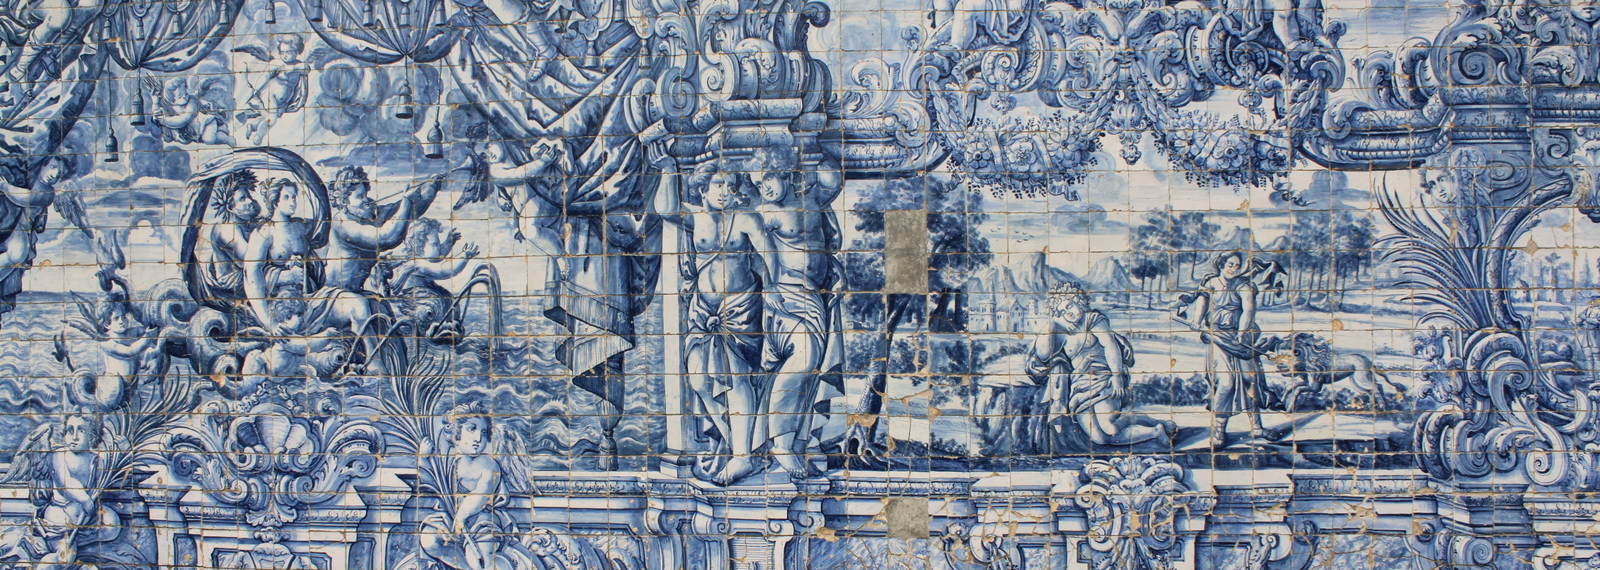 Porto, tiles at the Monastery of Se Cathedral